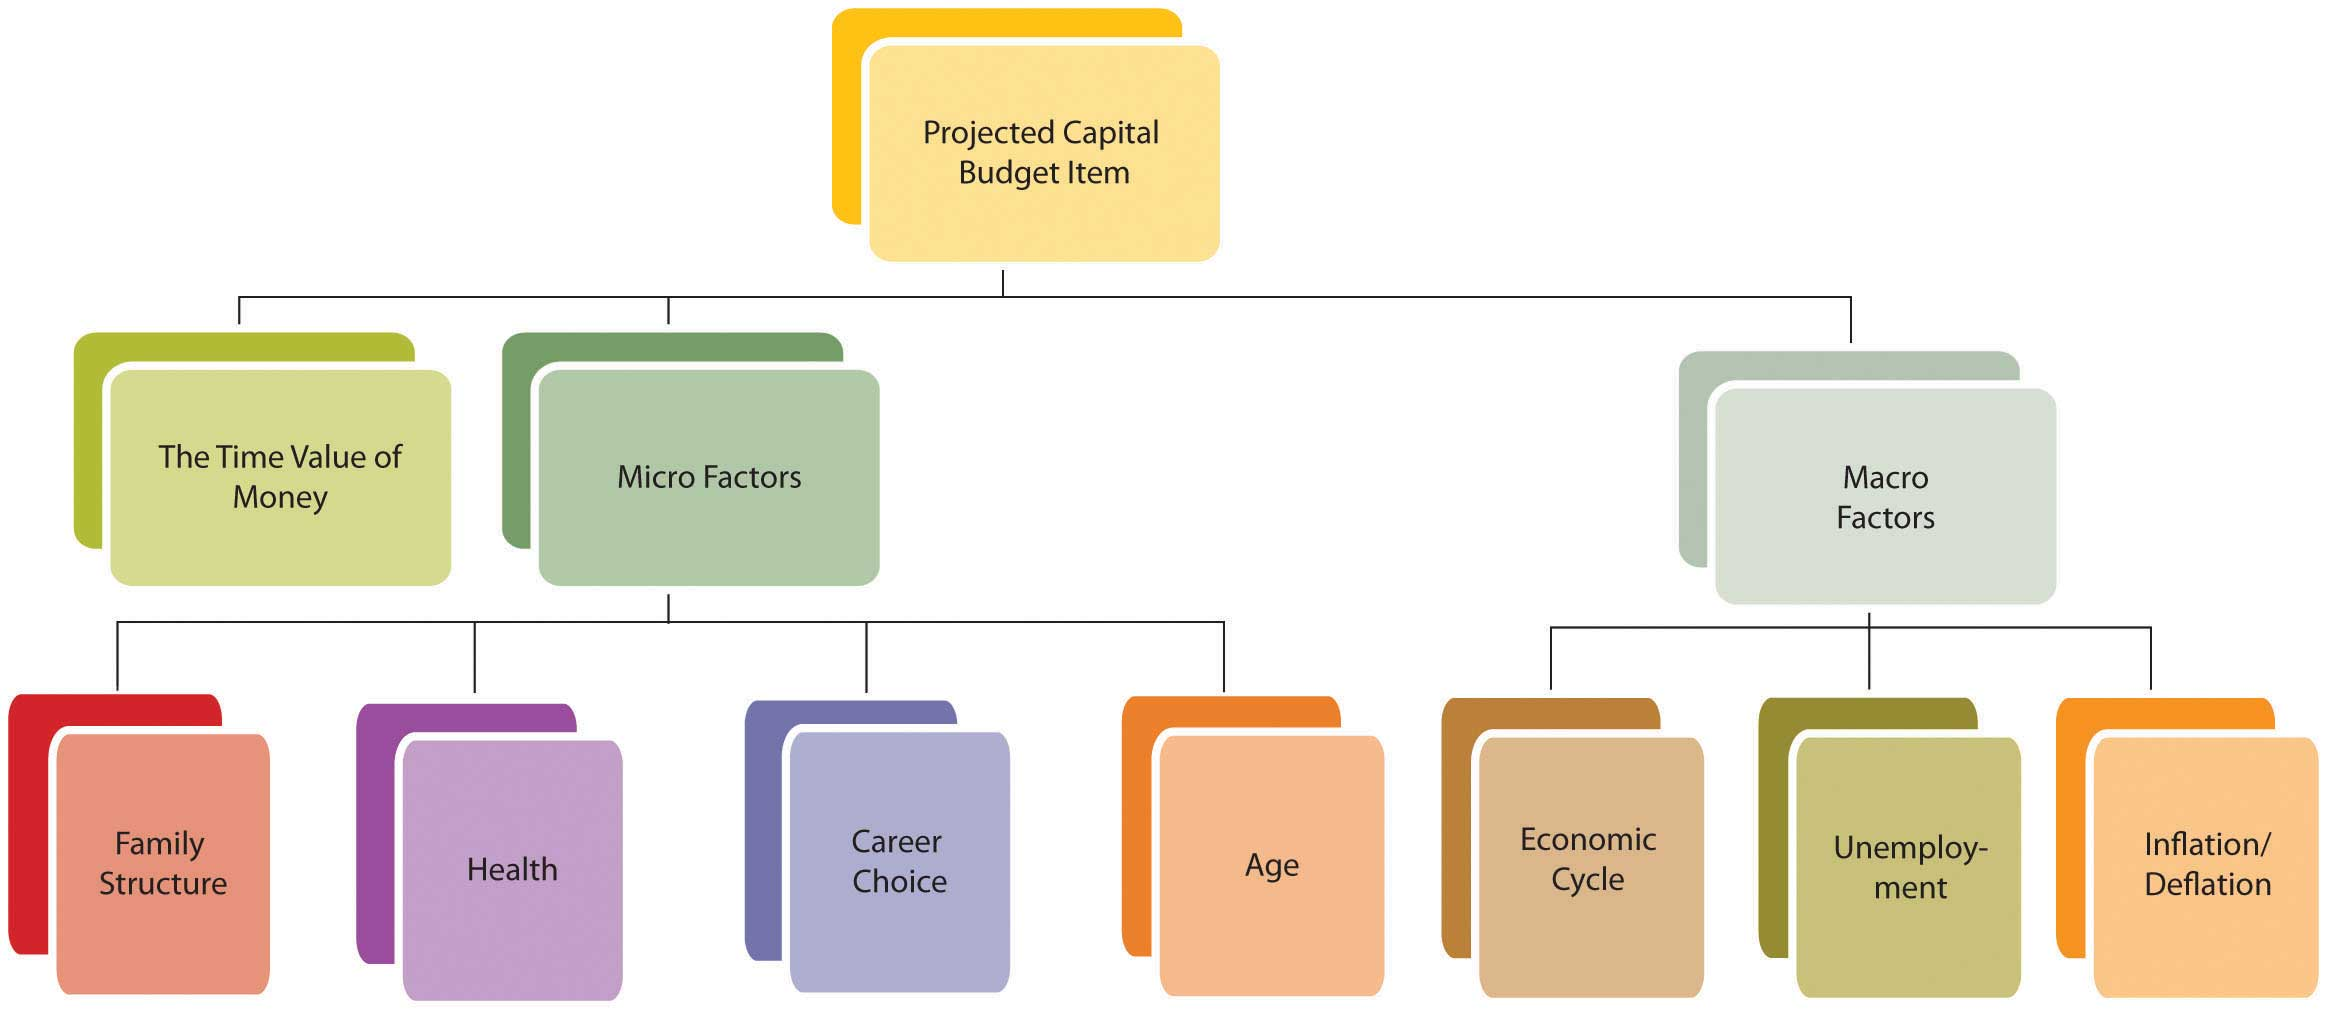 capatial budget case 2 investment the dividend discount model is followed to calculate the effect that the new investment will have to the company's share in the section of conclusions, there is an overall indication of the findings and.